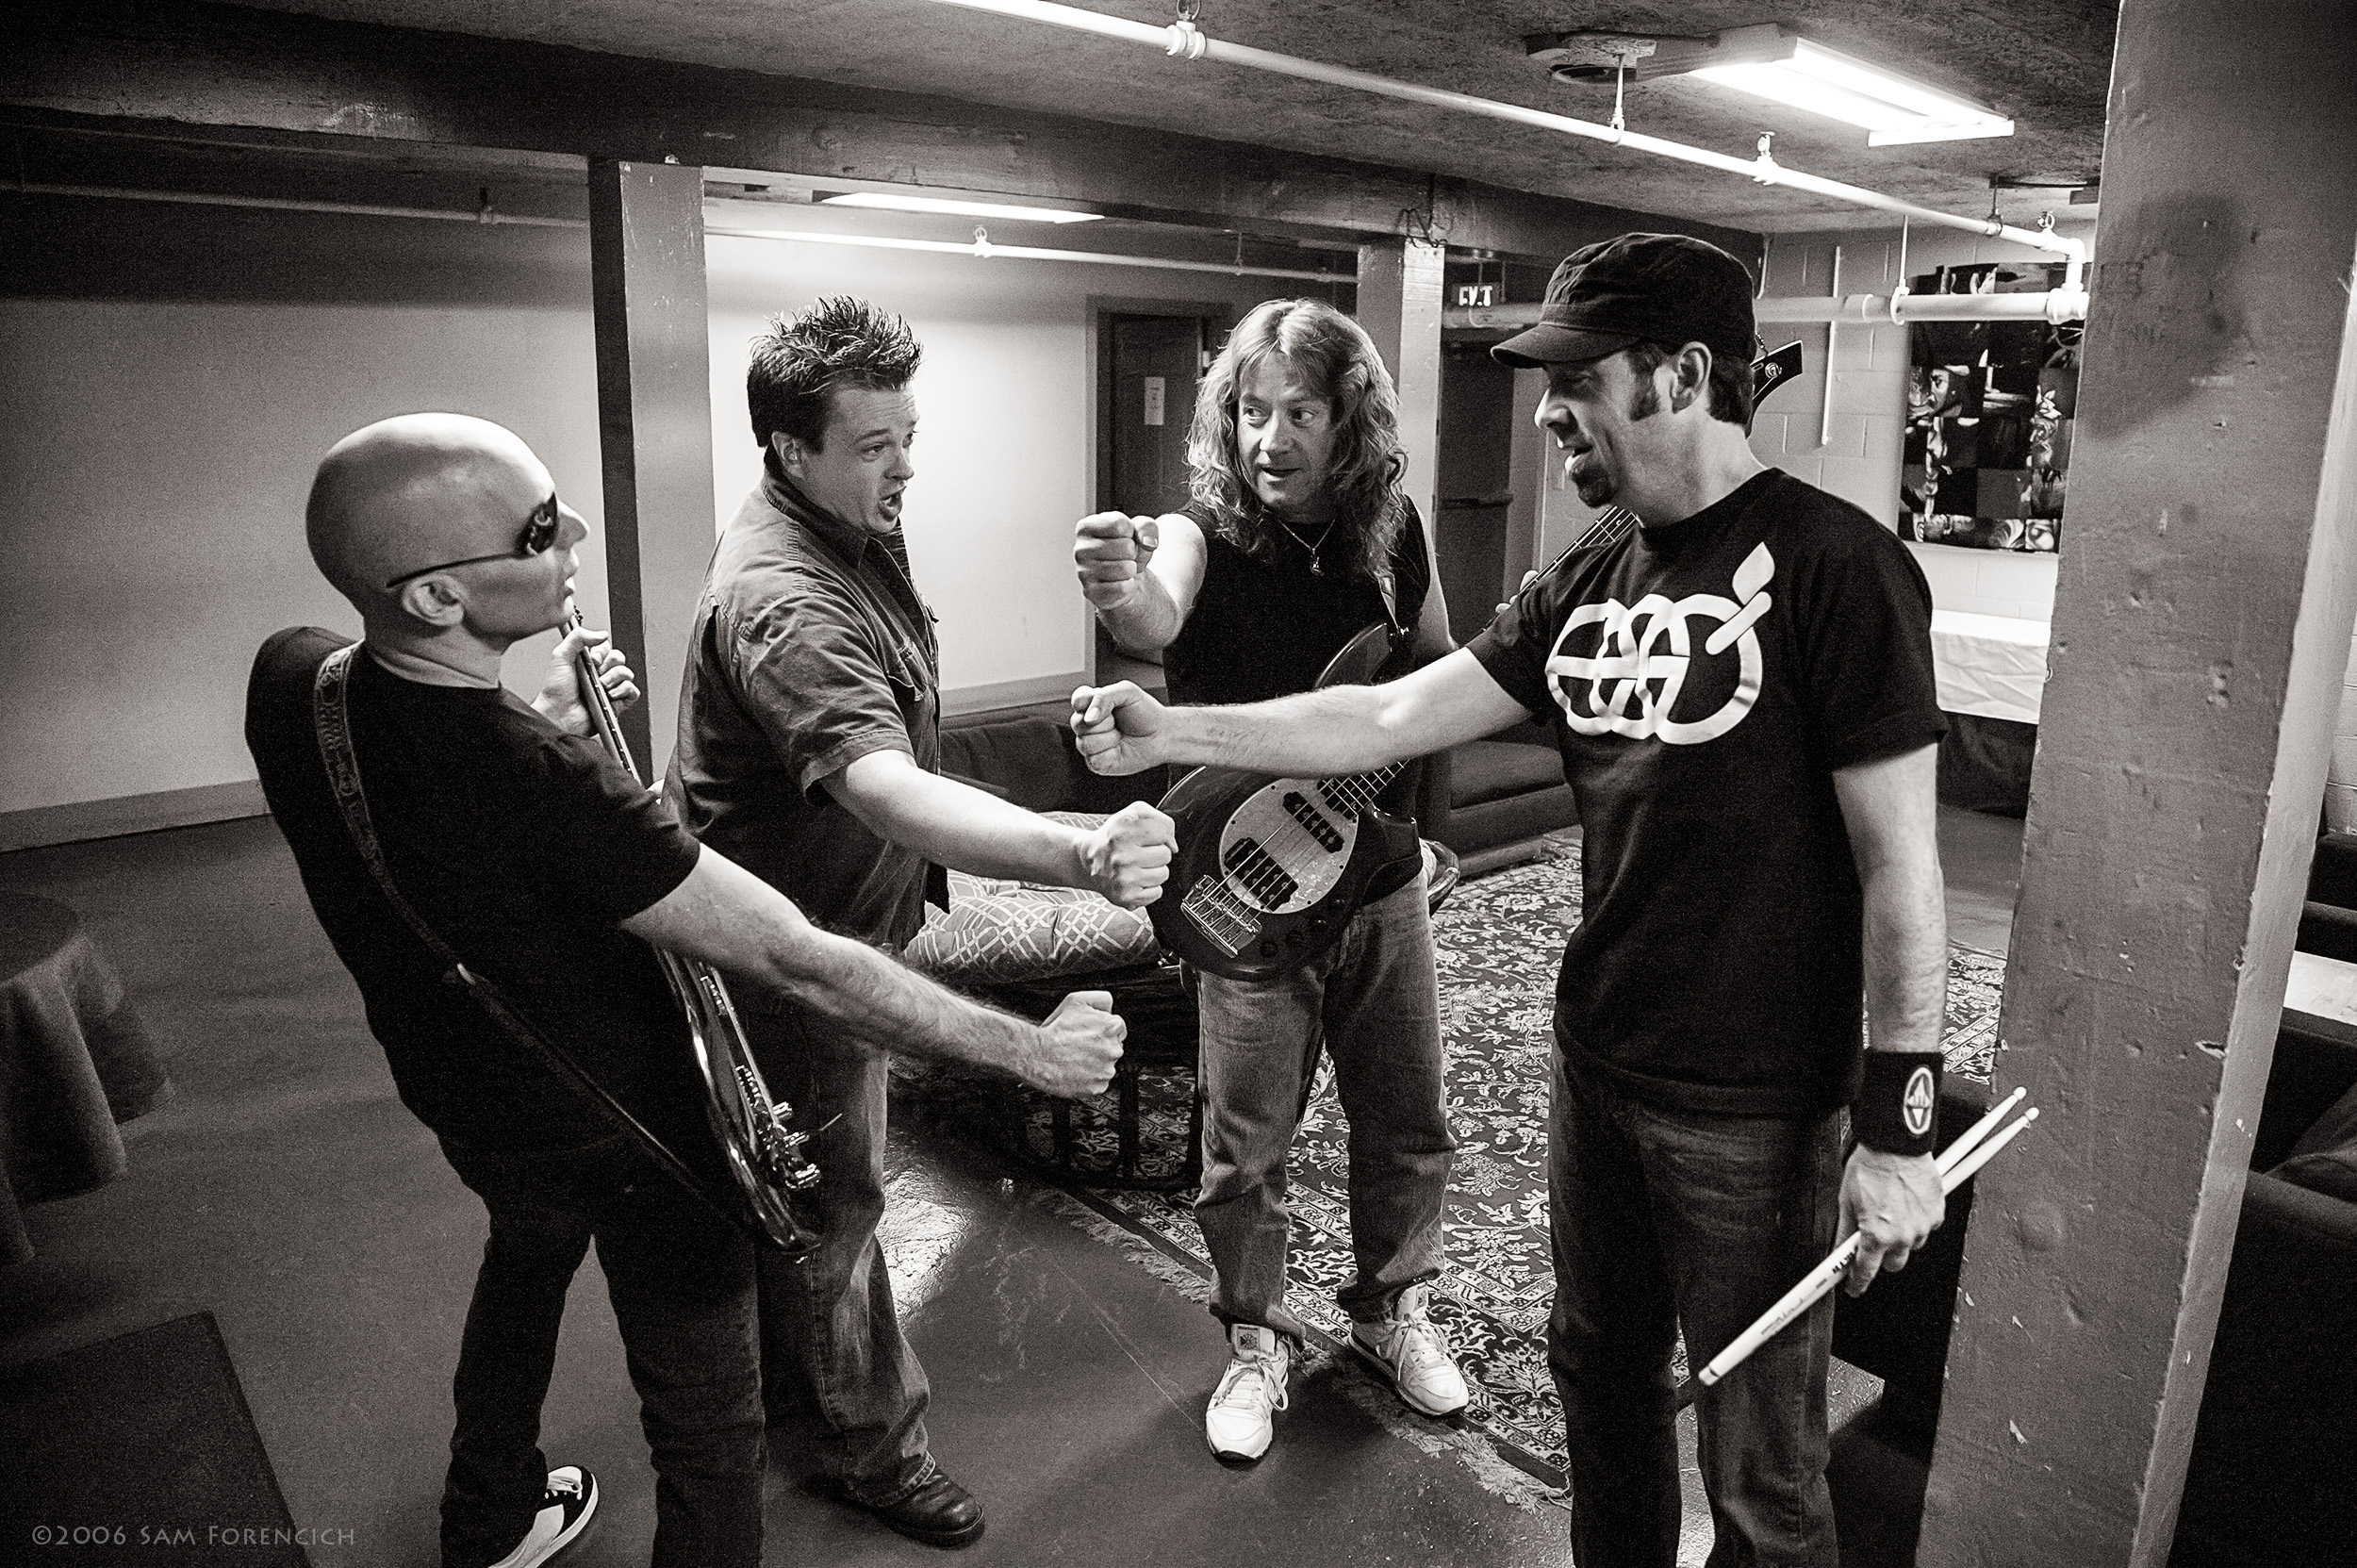 May 2006,Portland, Oregon - Joe Satriani, Galen Henson, Dave LaRue, and Jeff Campitelli share a moment prior to their performance at the Roseland Theater - 2006 Super Colossal Tour ©2006 Sam Forencich